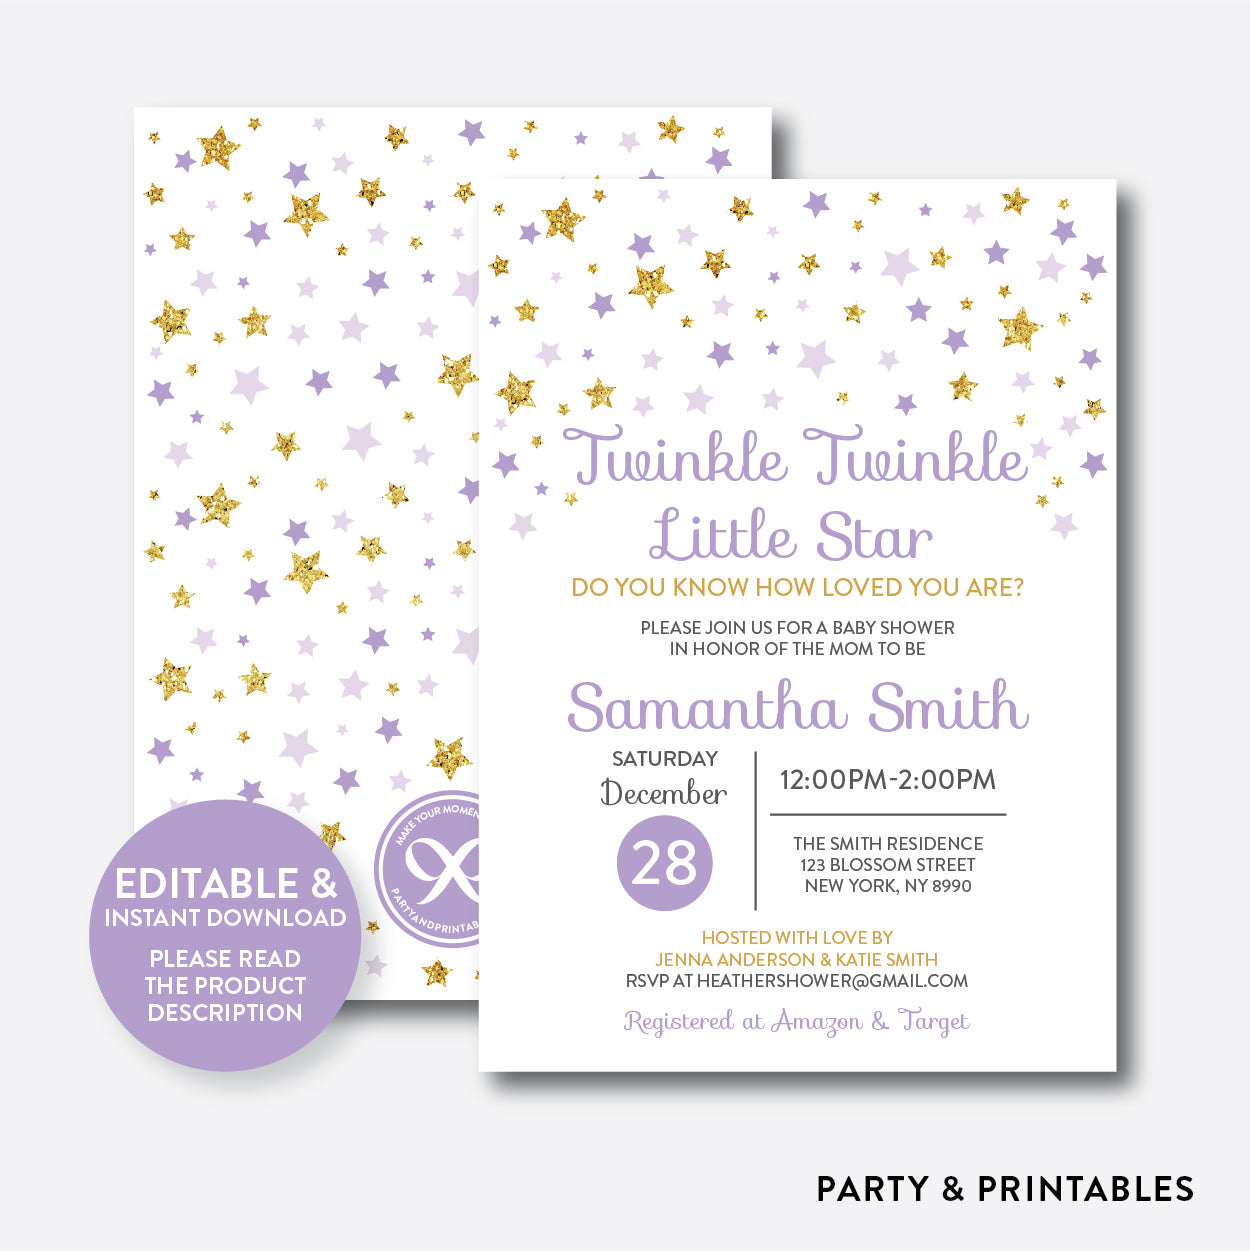 graphic about Free Printable Twinkle Twinkle Little Star Baby Shower Invitations called Twinkle Twinkle Tiny Star Kid Shower Invitation / Editable / Quick Down load (GBS.08)